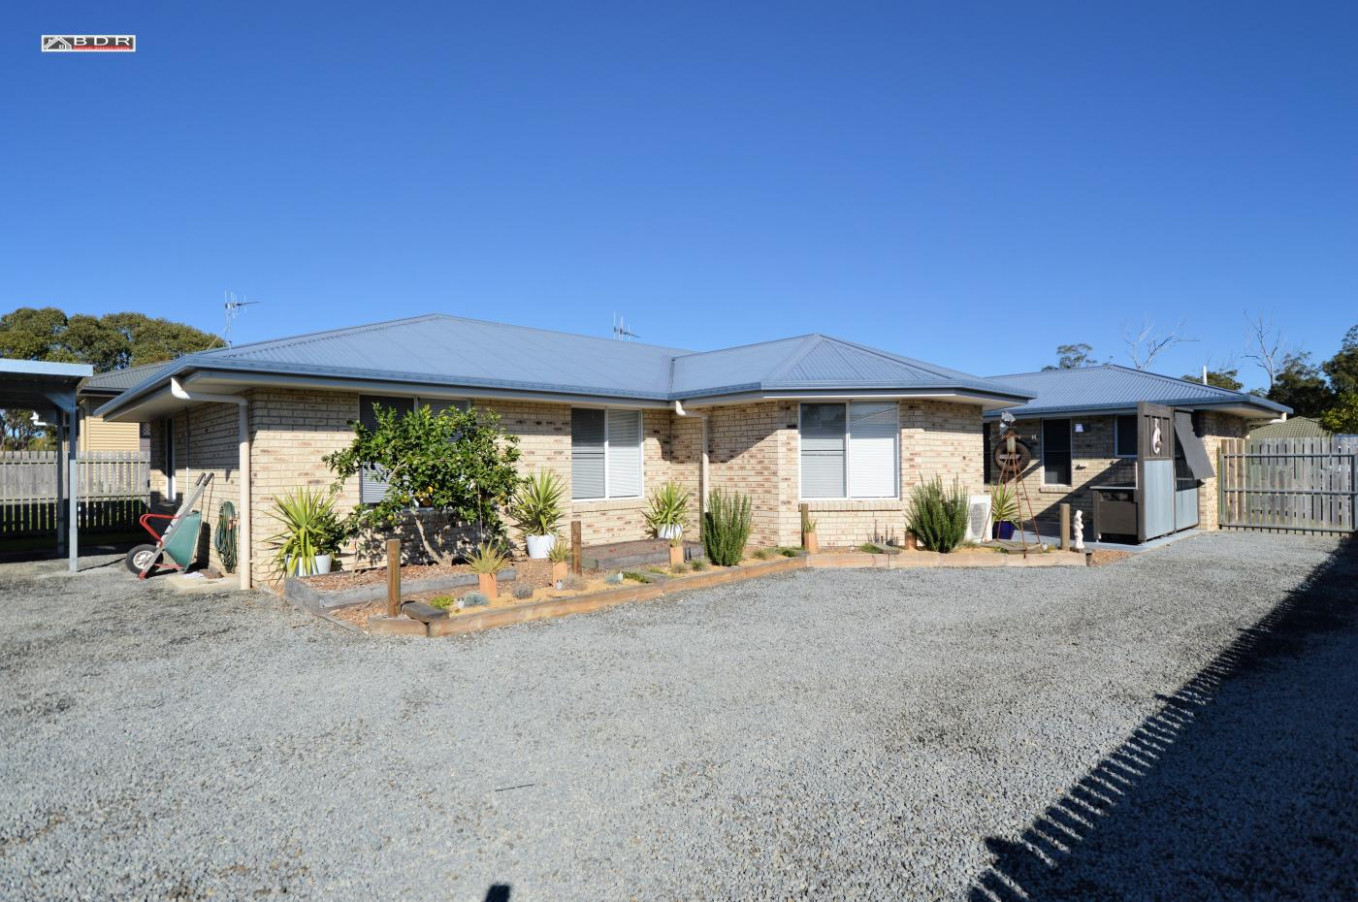 8 Lakeside Drive, Burrum Heads For Sale As Of 8 Jun 8 Garage With Carport On Side